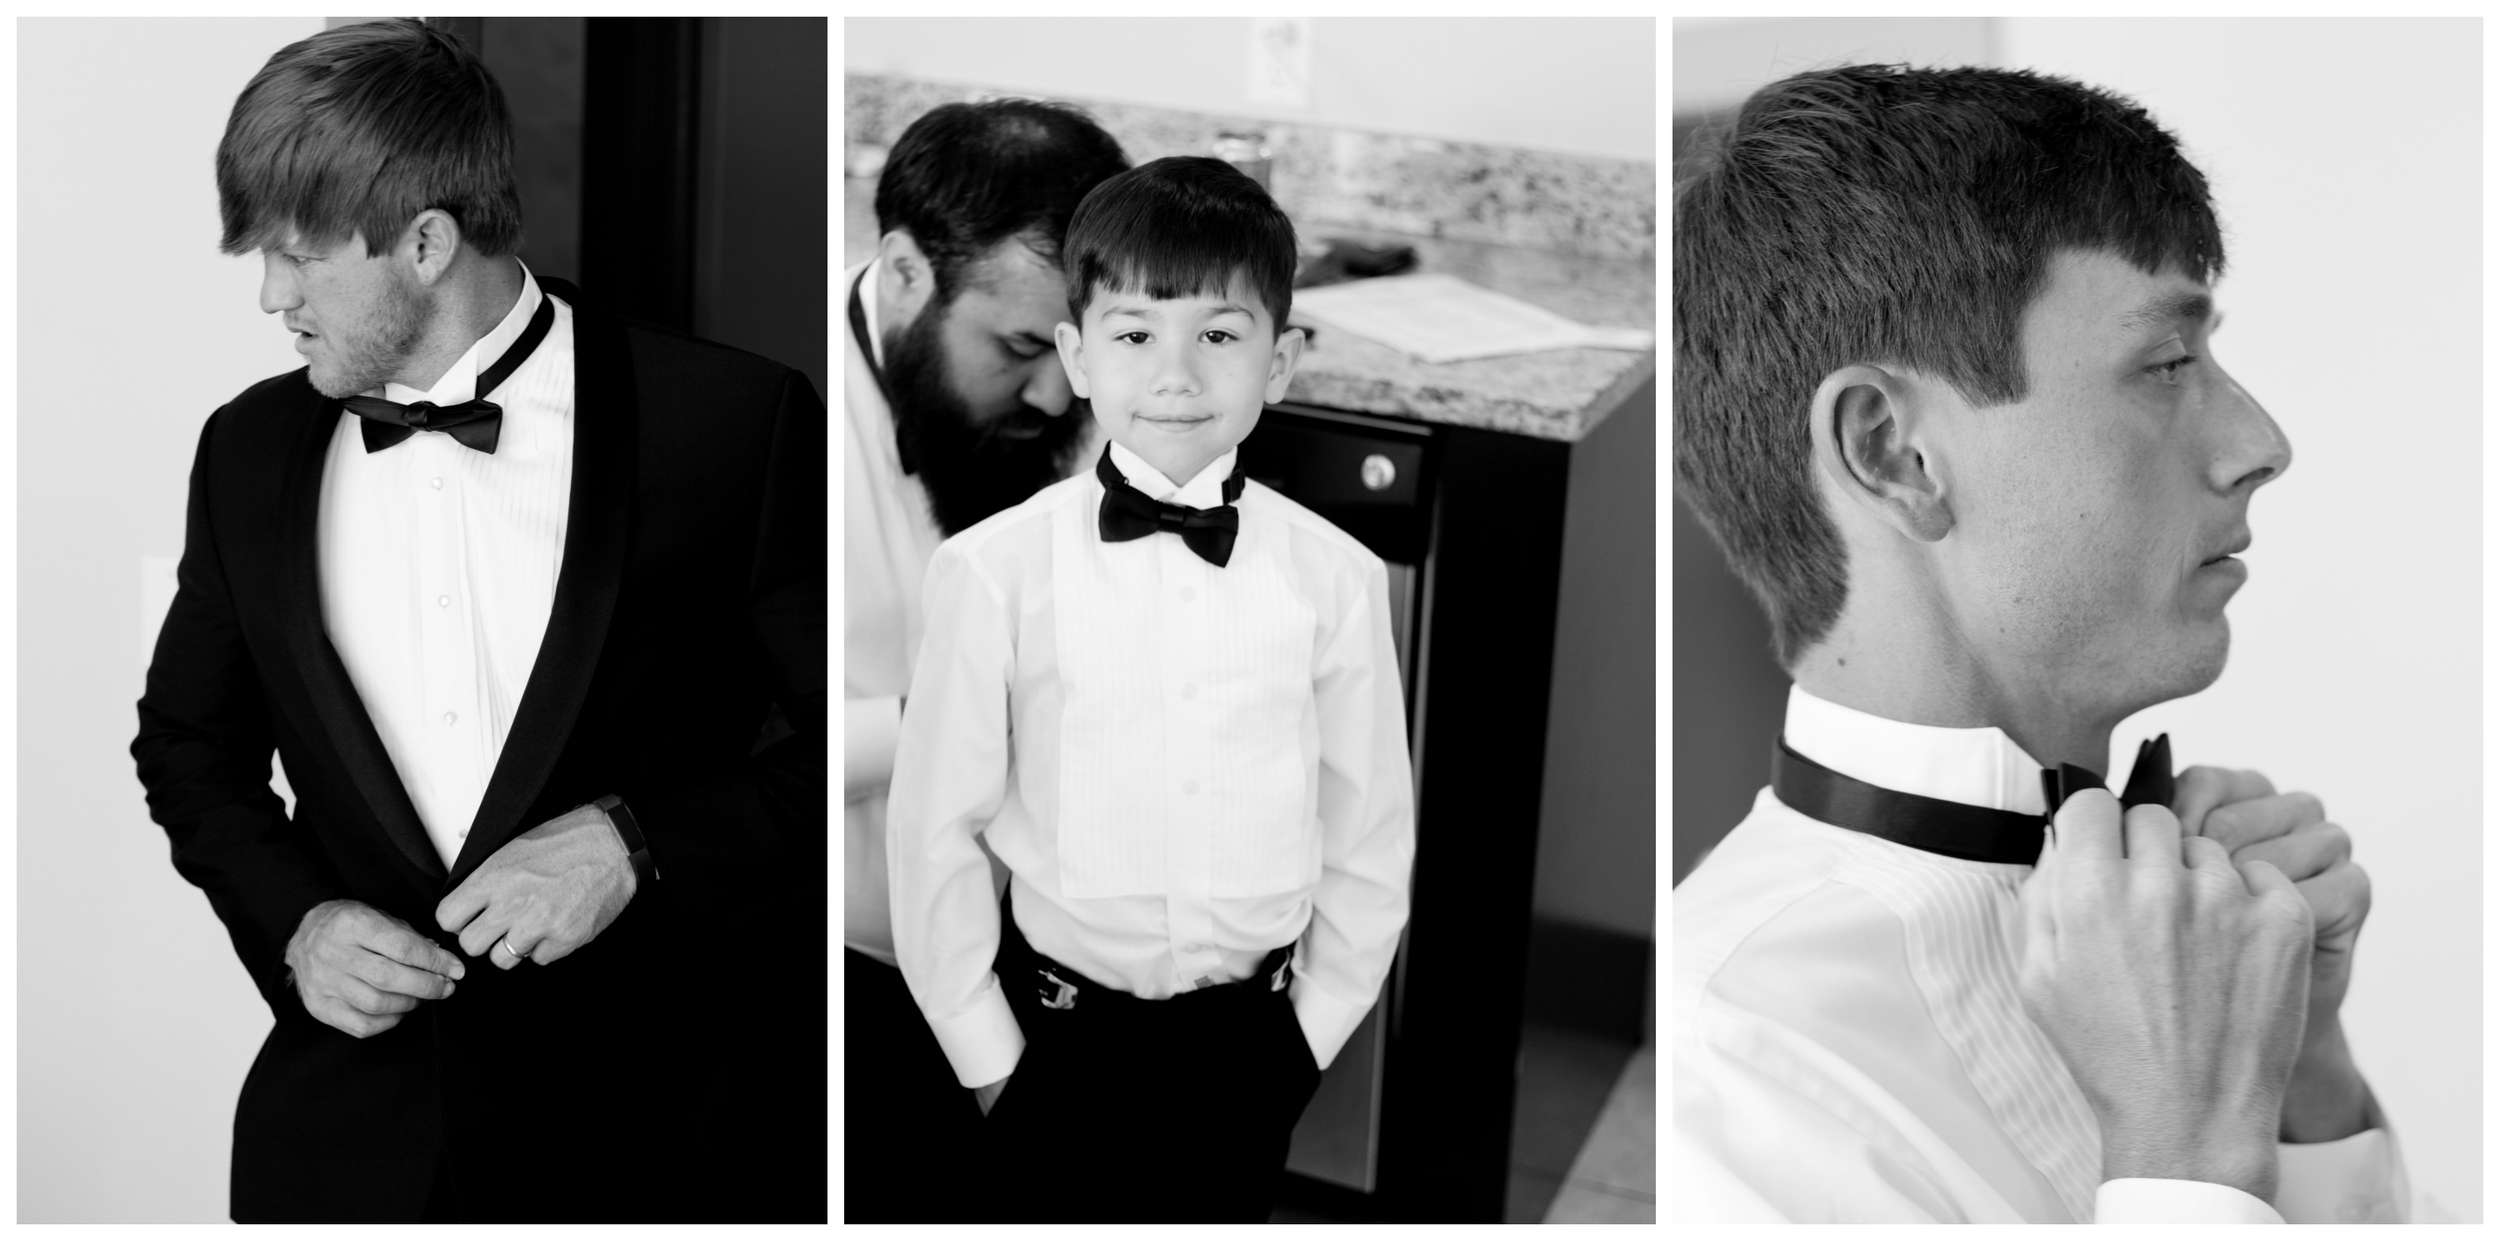 groom, groomsmen, ring bearer putting on tuxedos (black and white wedding photos by Uninvented Colors Photography)